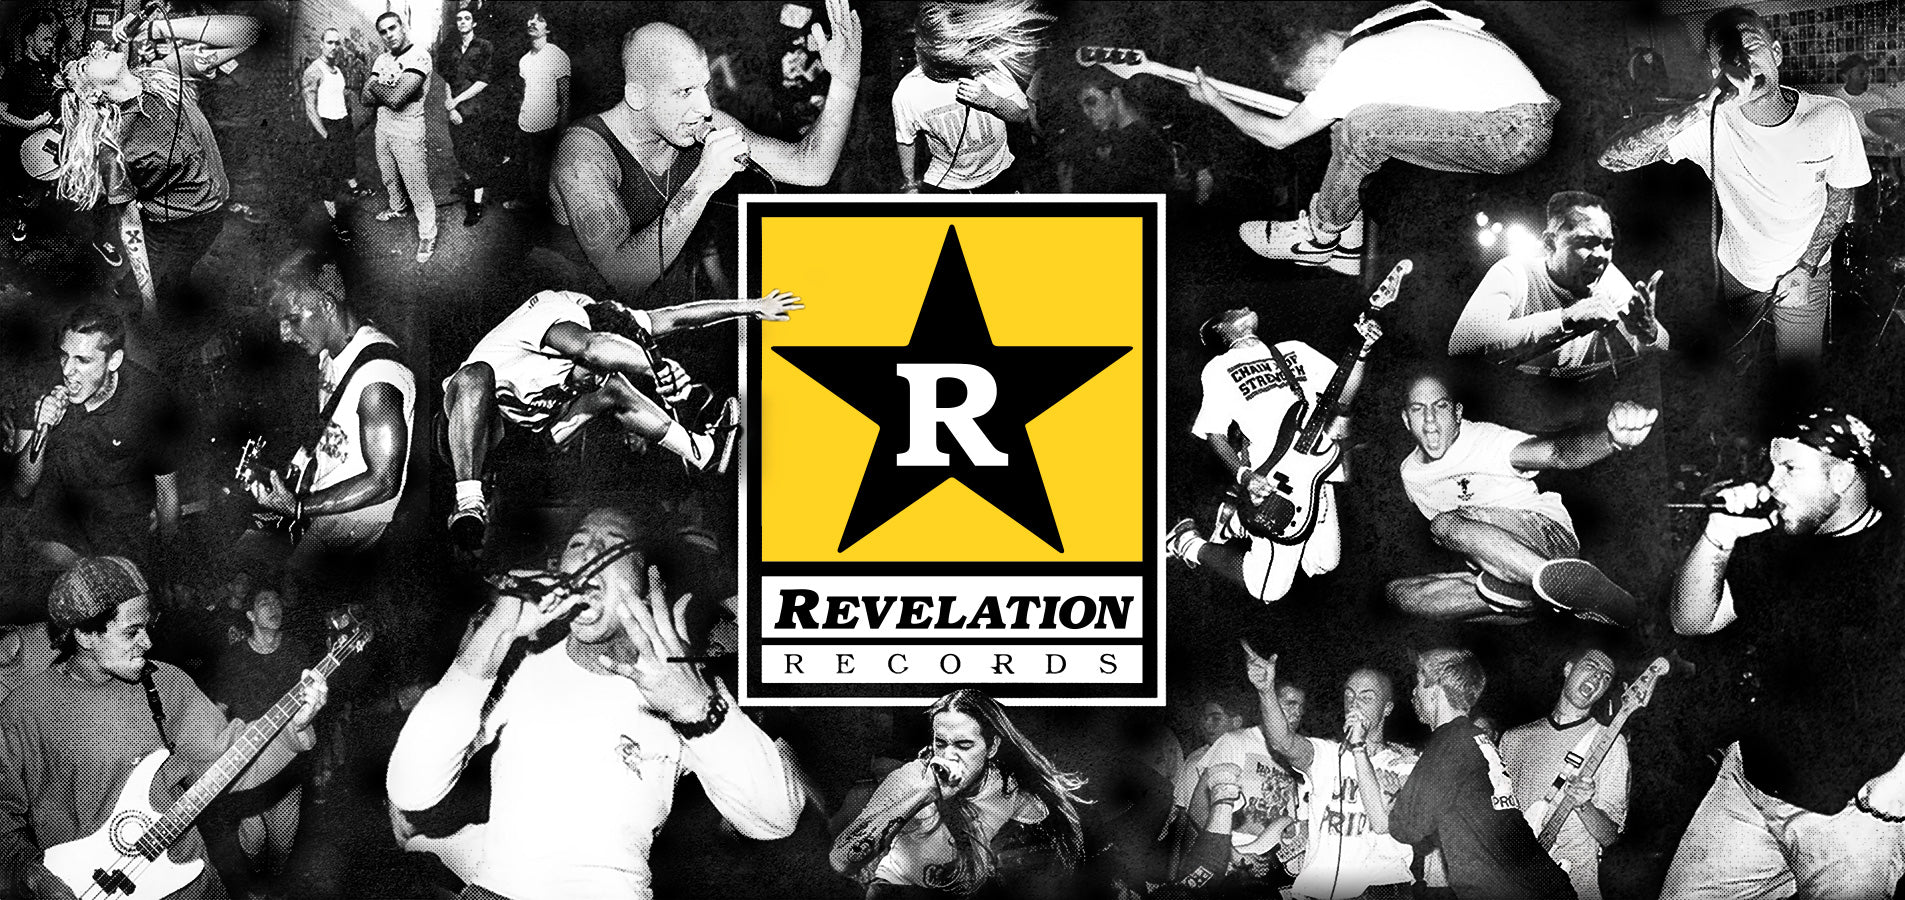 Revelation Records Banner Live Photo Collage